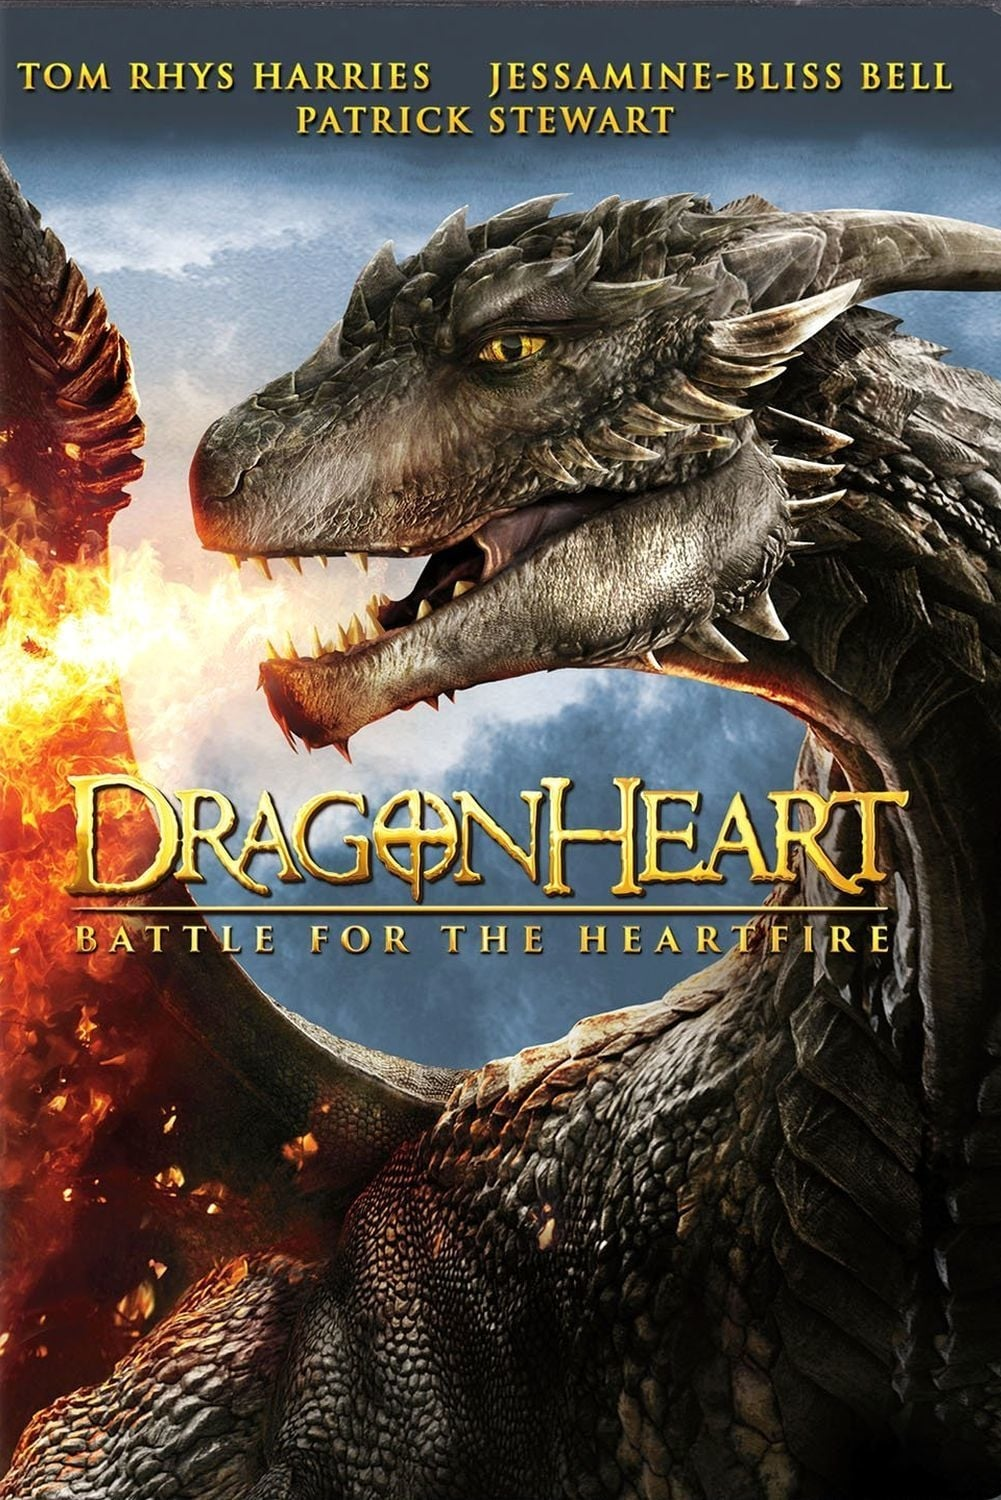 Assistir Dragonheart: Battle for the Heartfire Legendado Online Legendado 1080p